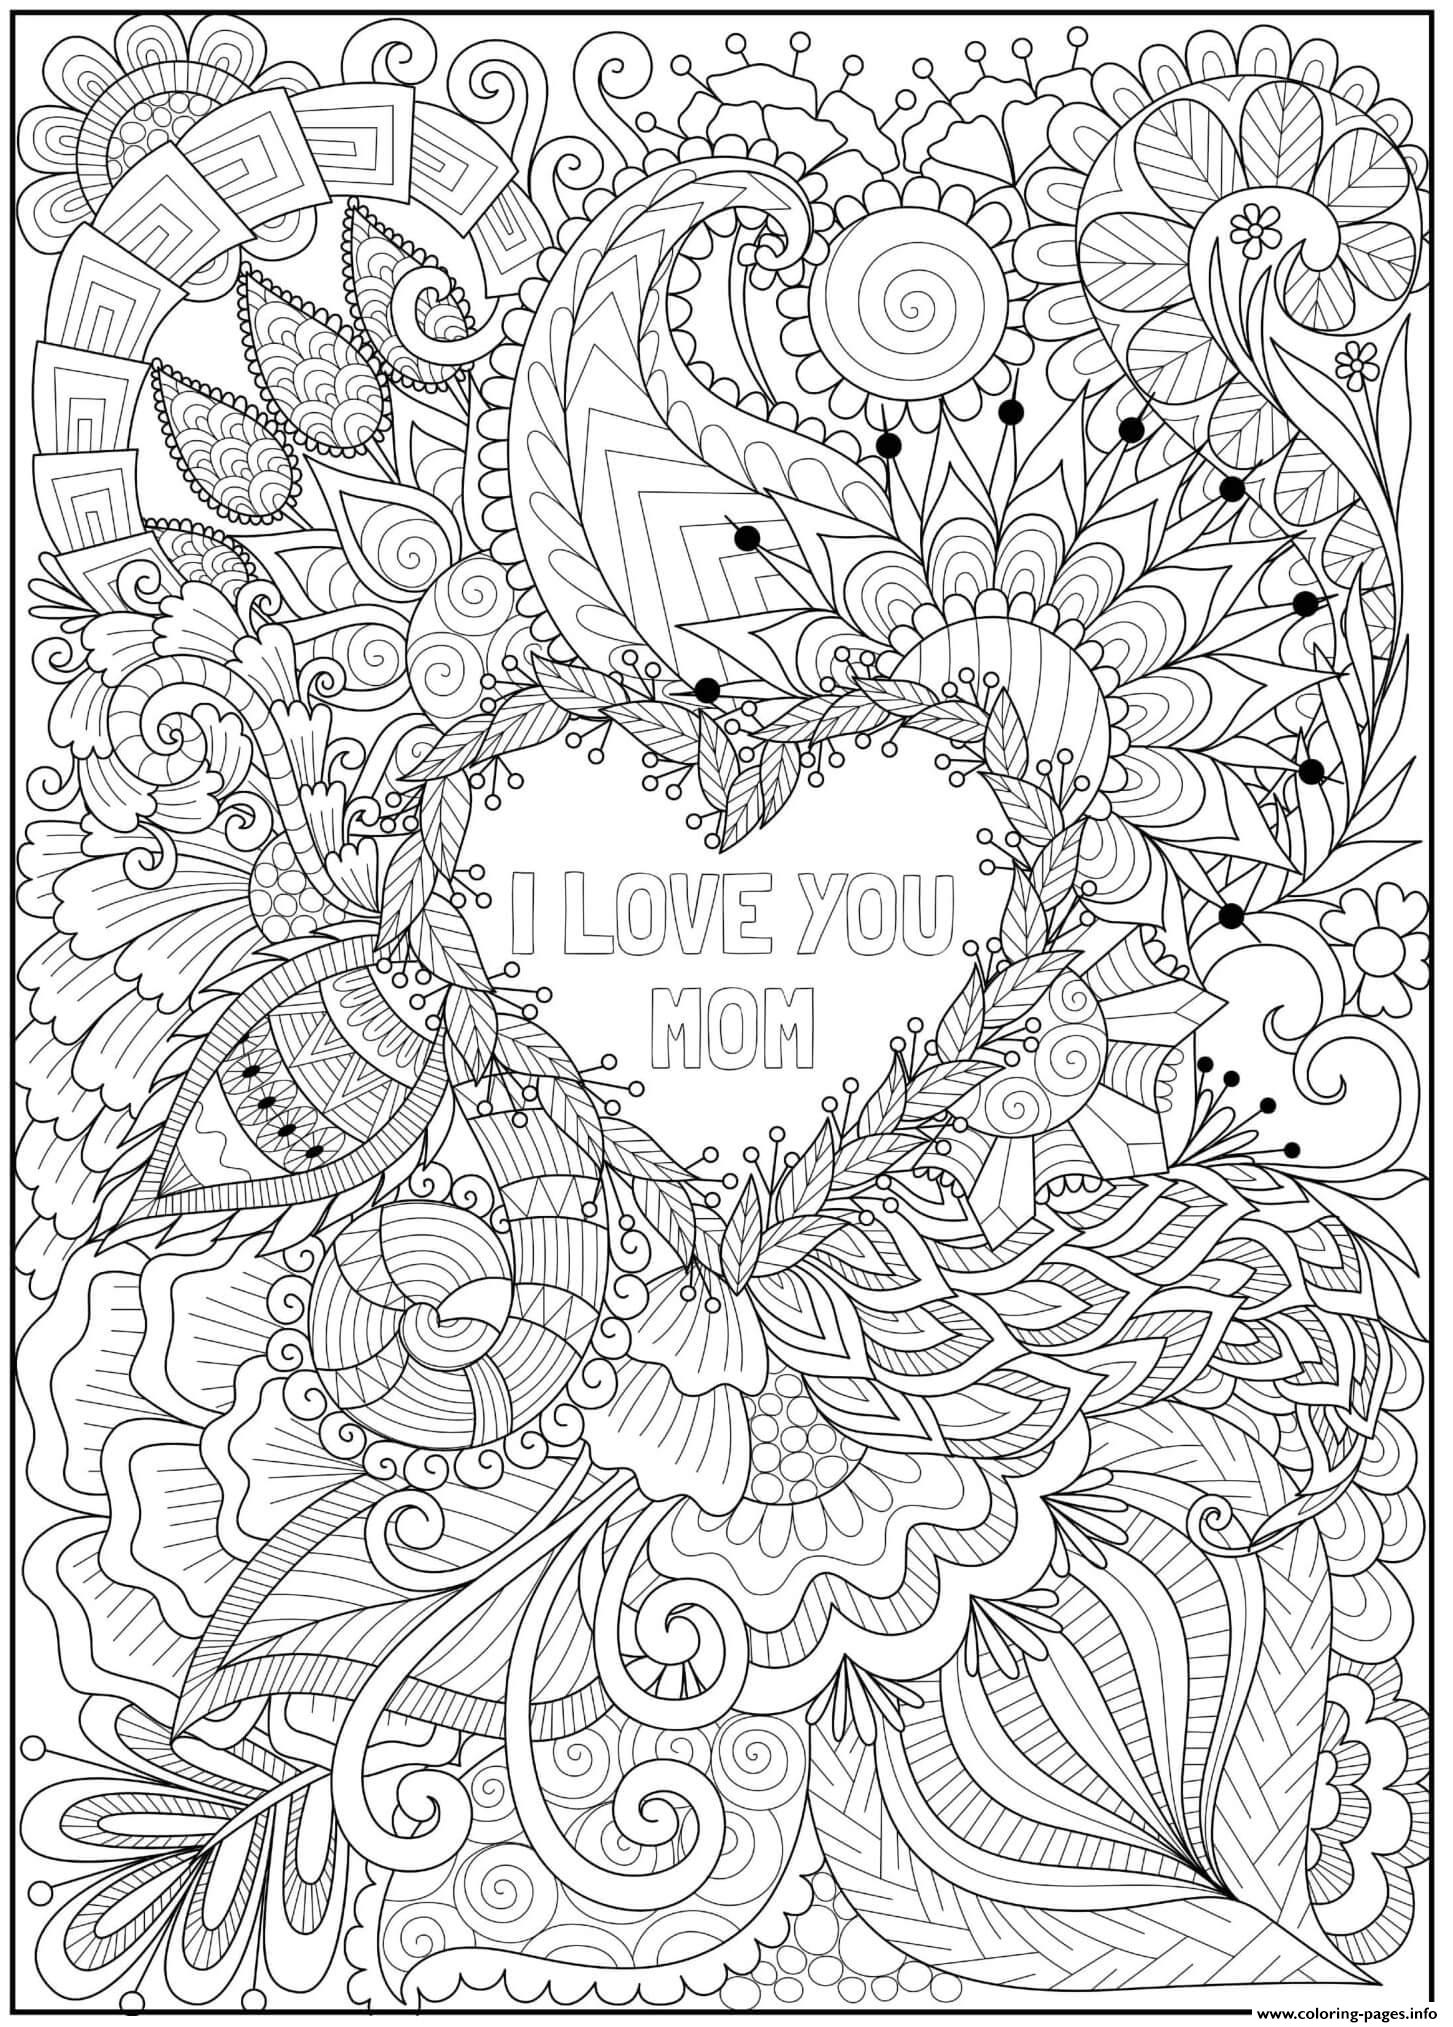 Mothers Day Heart Intricate Doodle Love You Mom Coloring Pages Printable